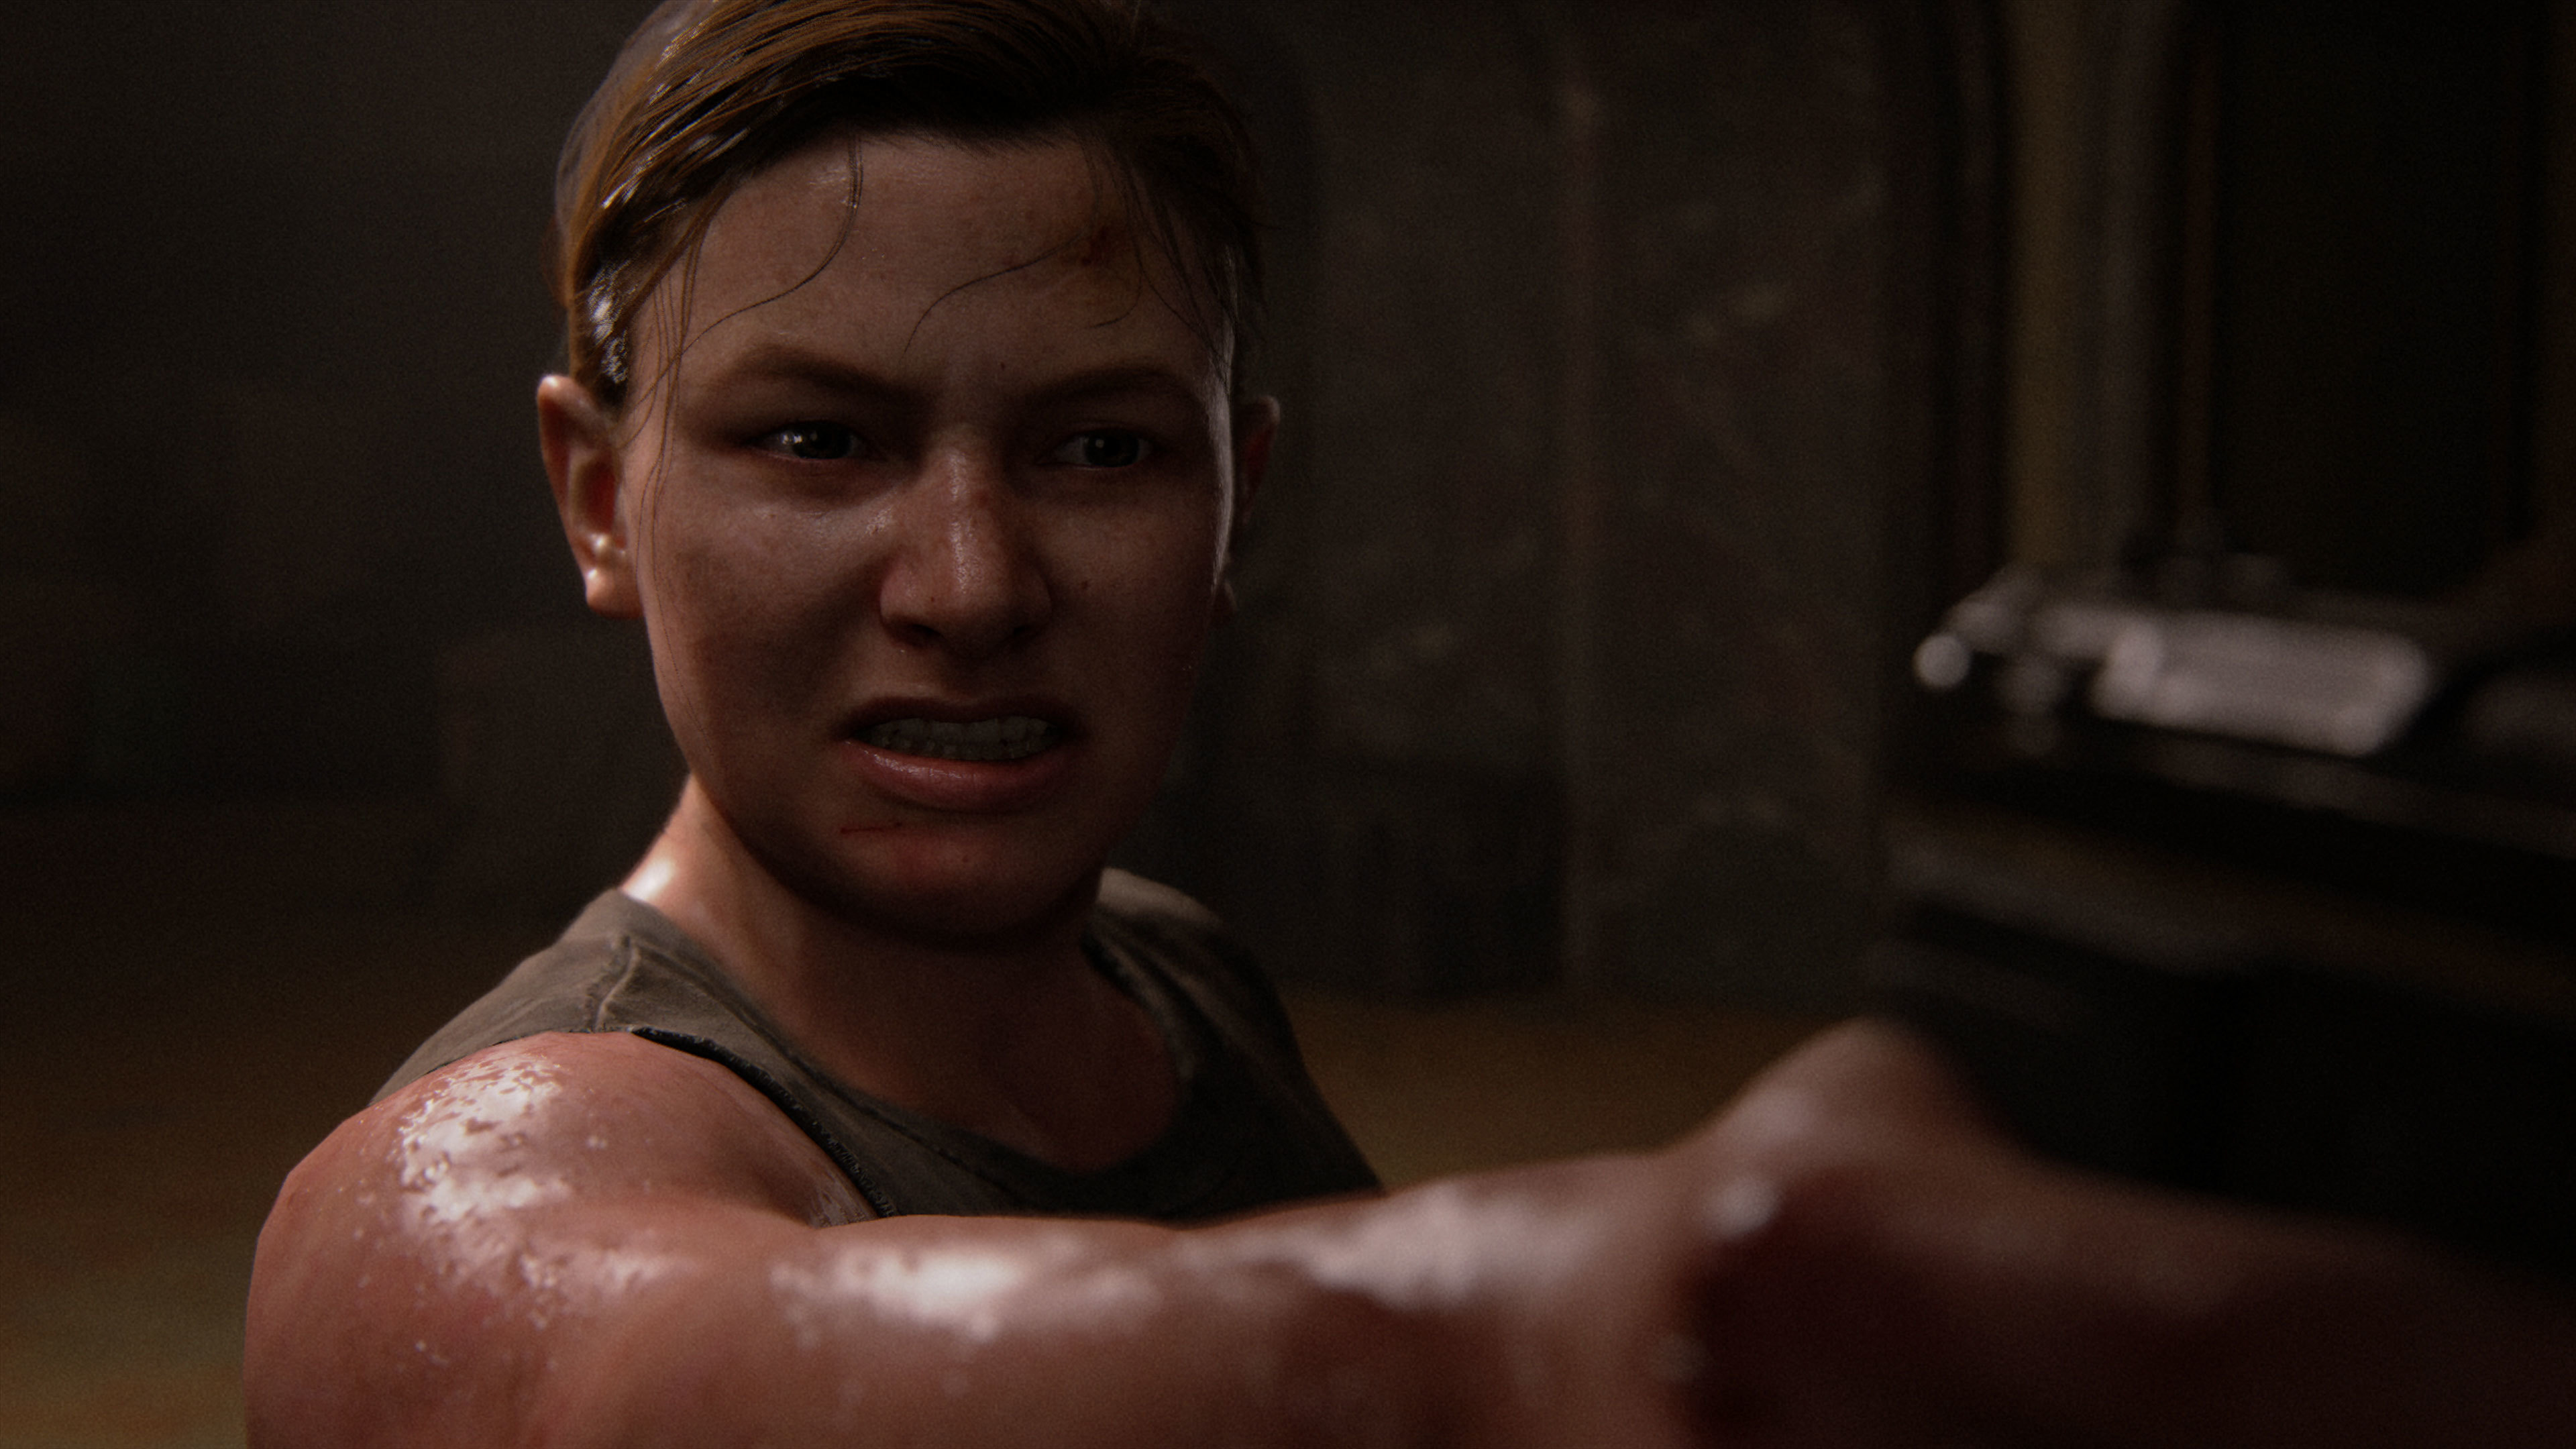 The Last of Us Part II: Explore Abby's Story in New Trailer